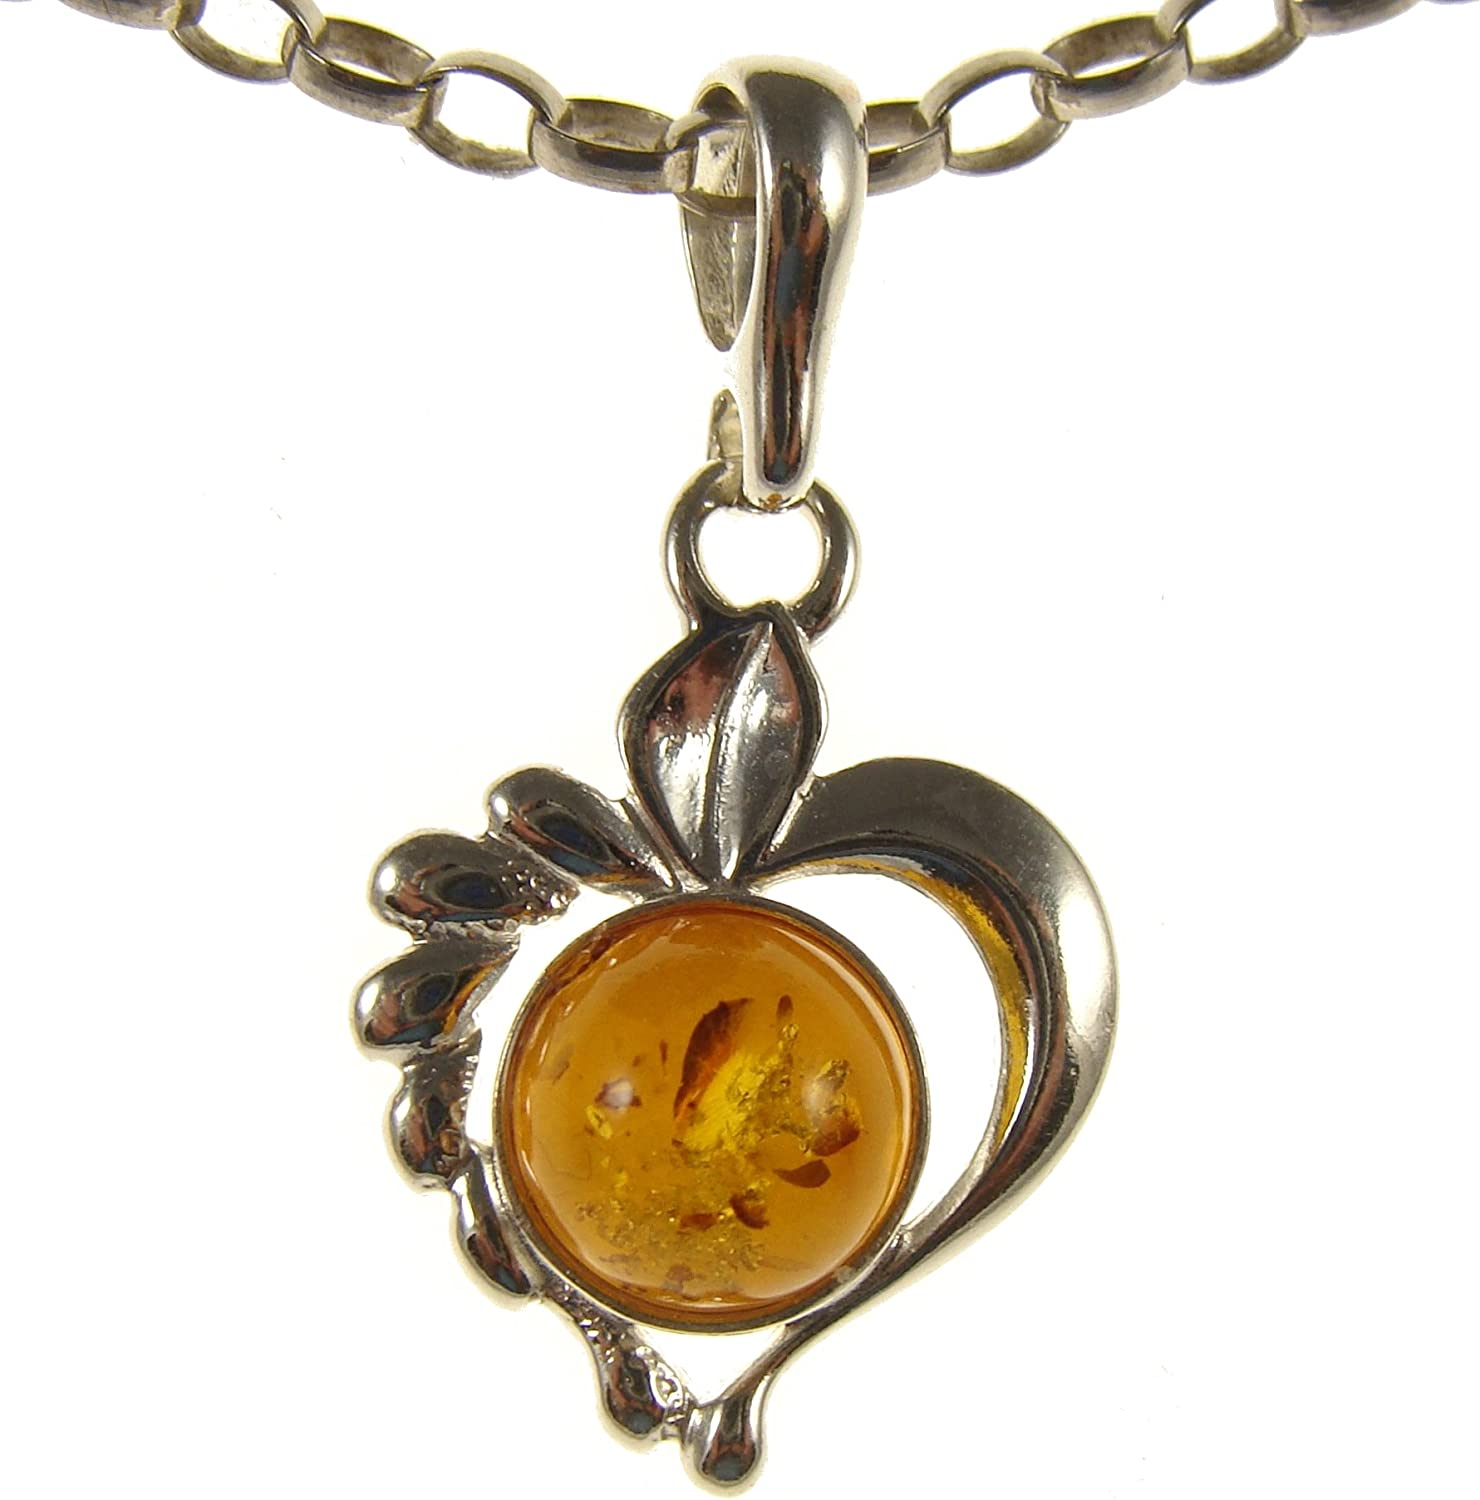 14 16 18 20 22 24 26 28 30 32 34 1mm ITALIAN SNAKE CHAIN BALTIC AMBER AND STERLING SILVER 925 HEART PENDANT NECKLACE